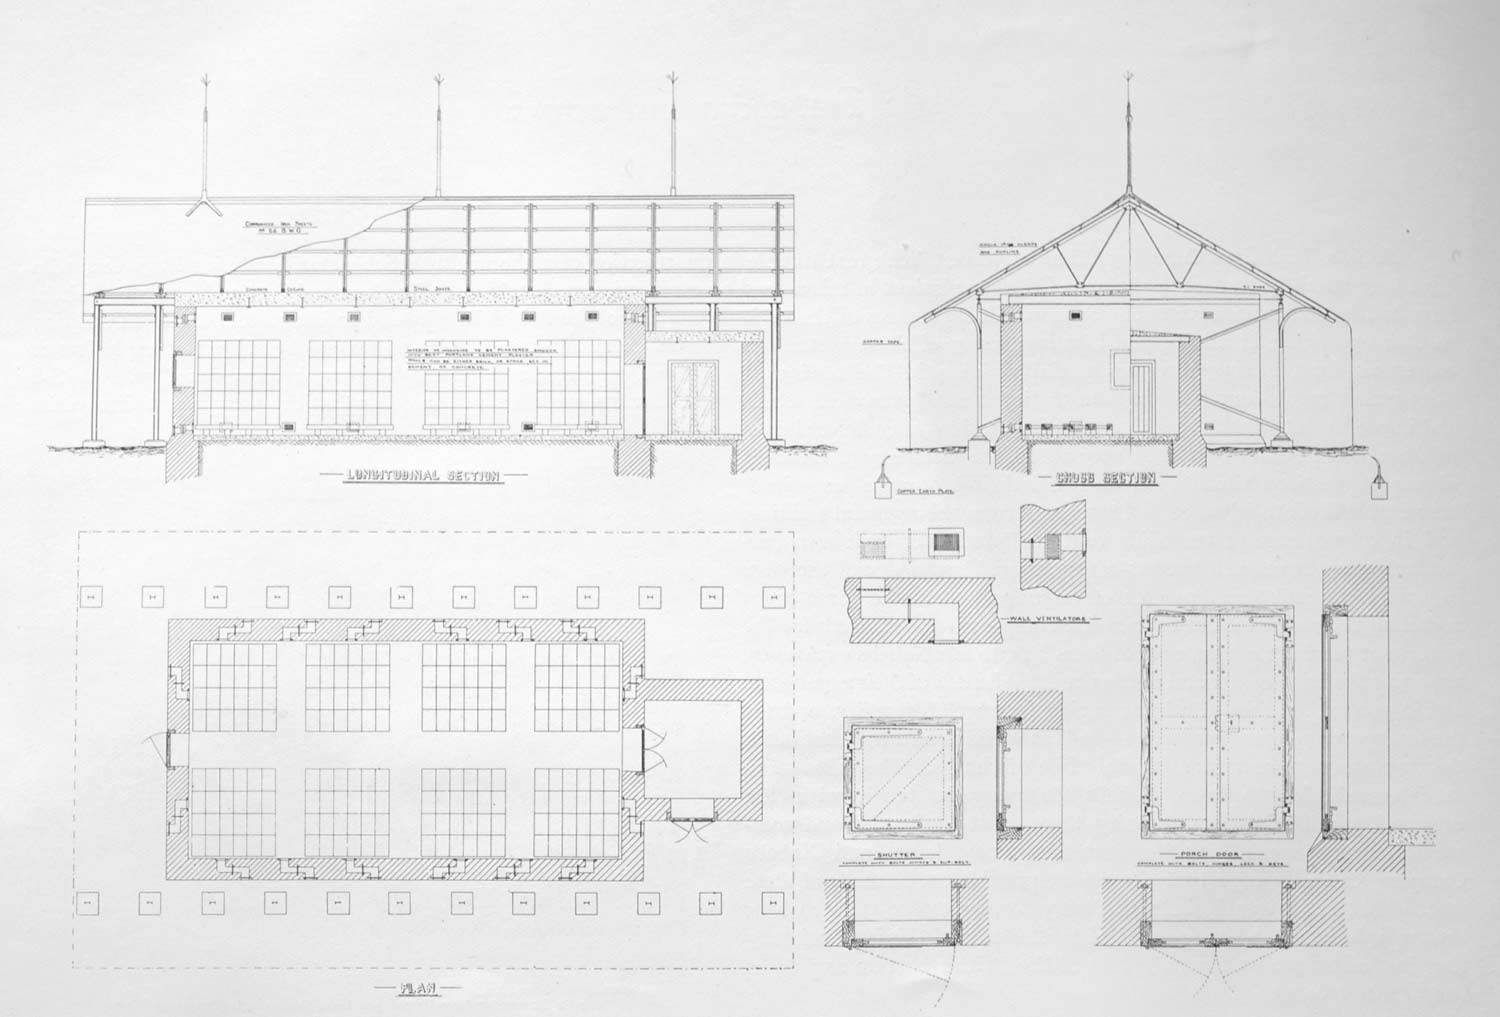 Plans and sections for a typical explosives factory magazine